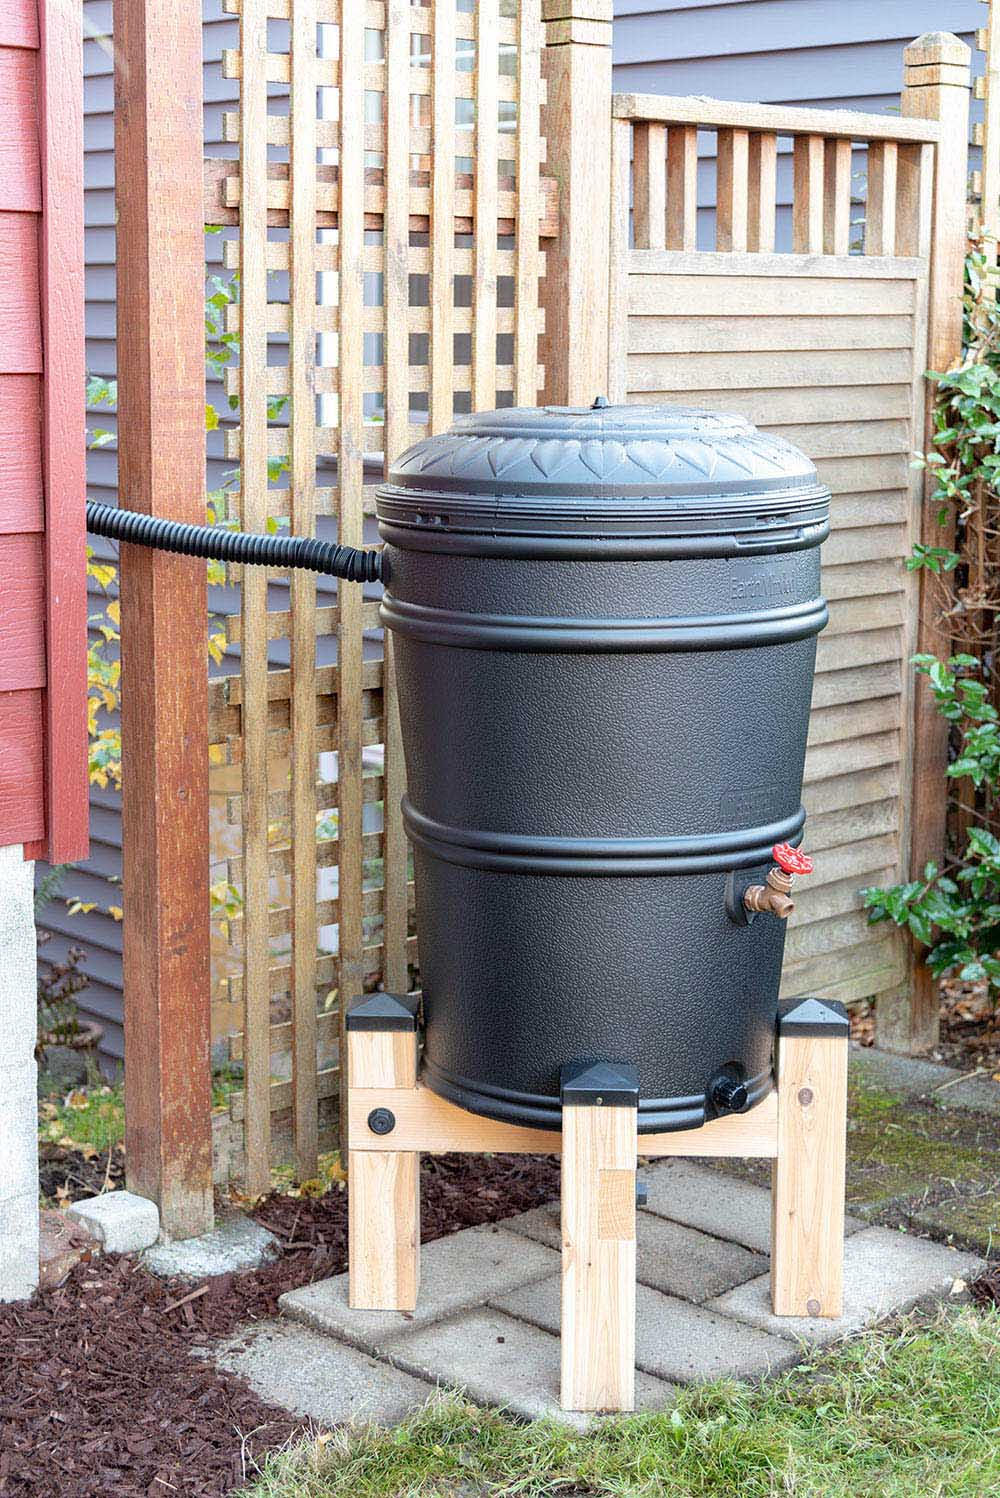 A black rain barrel is elevated on a wooden stand.